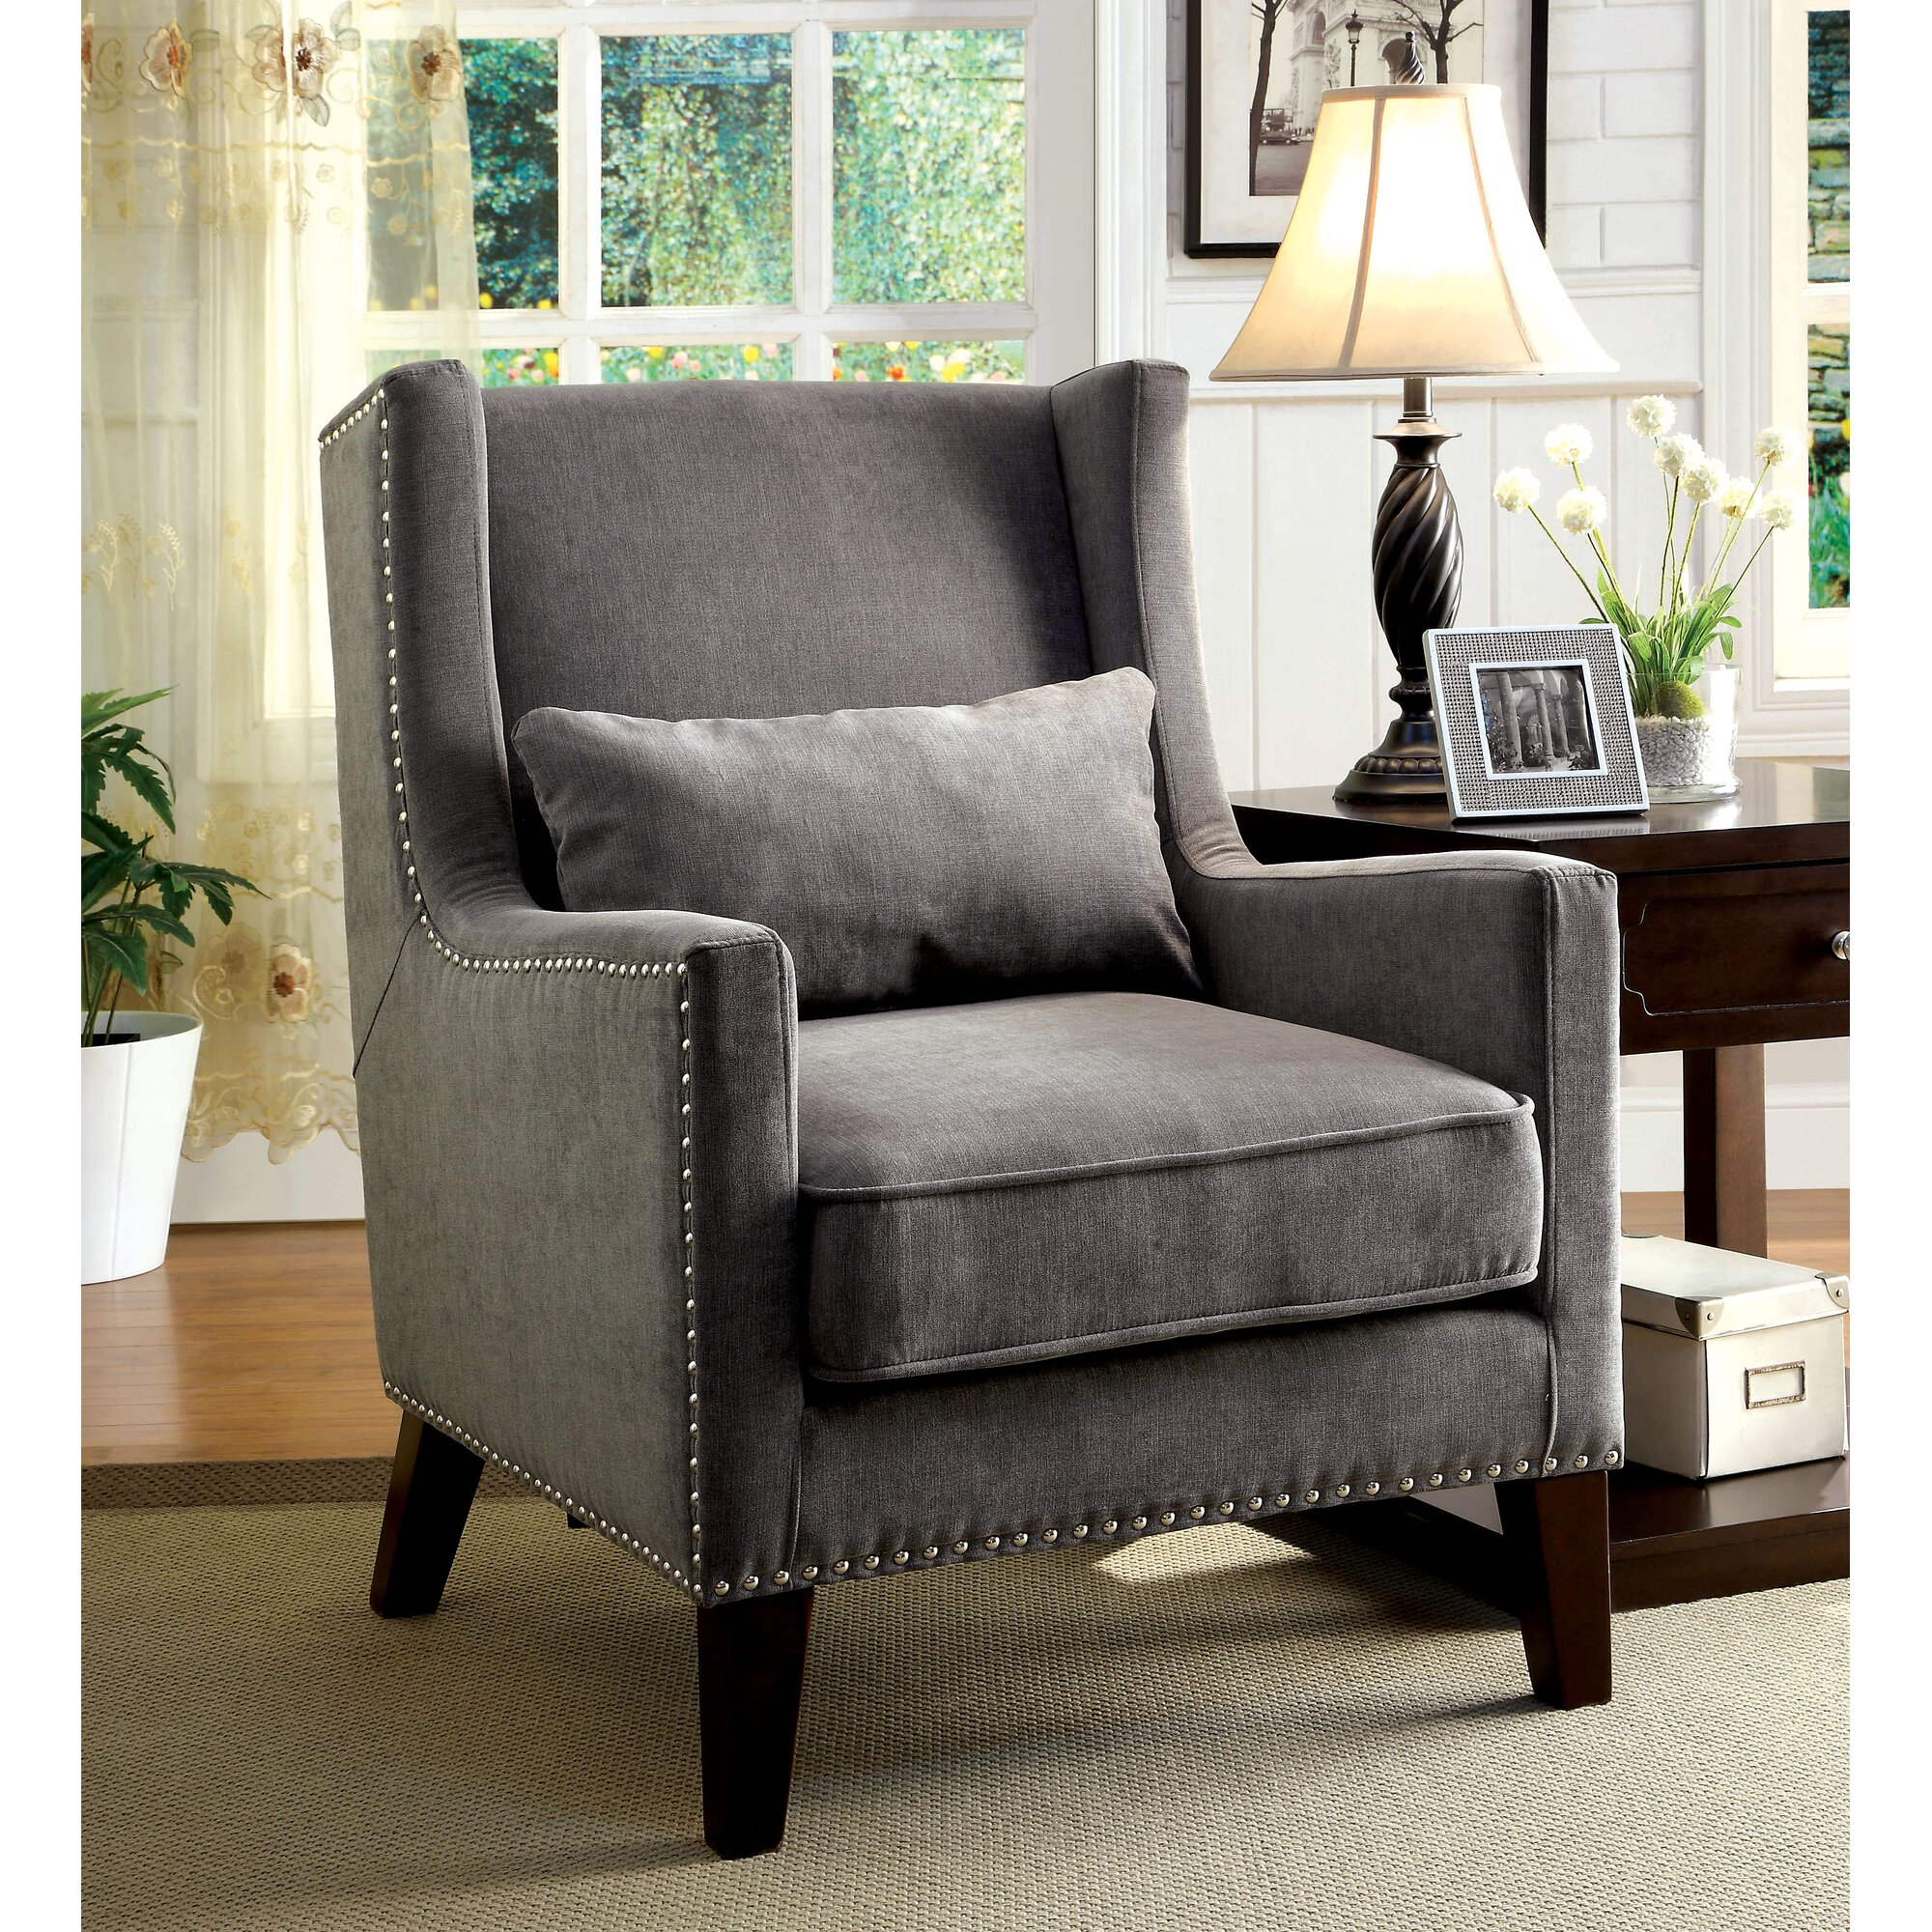 Wingback Recliners Chairs Living Room Furniture Living Room